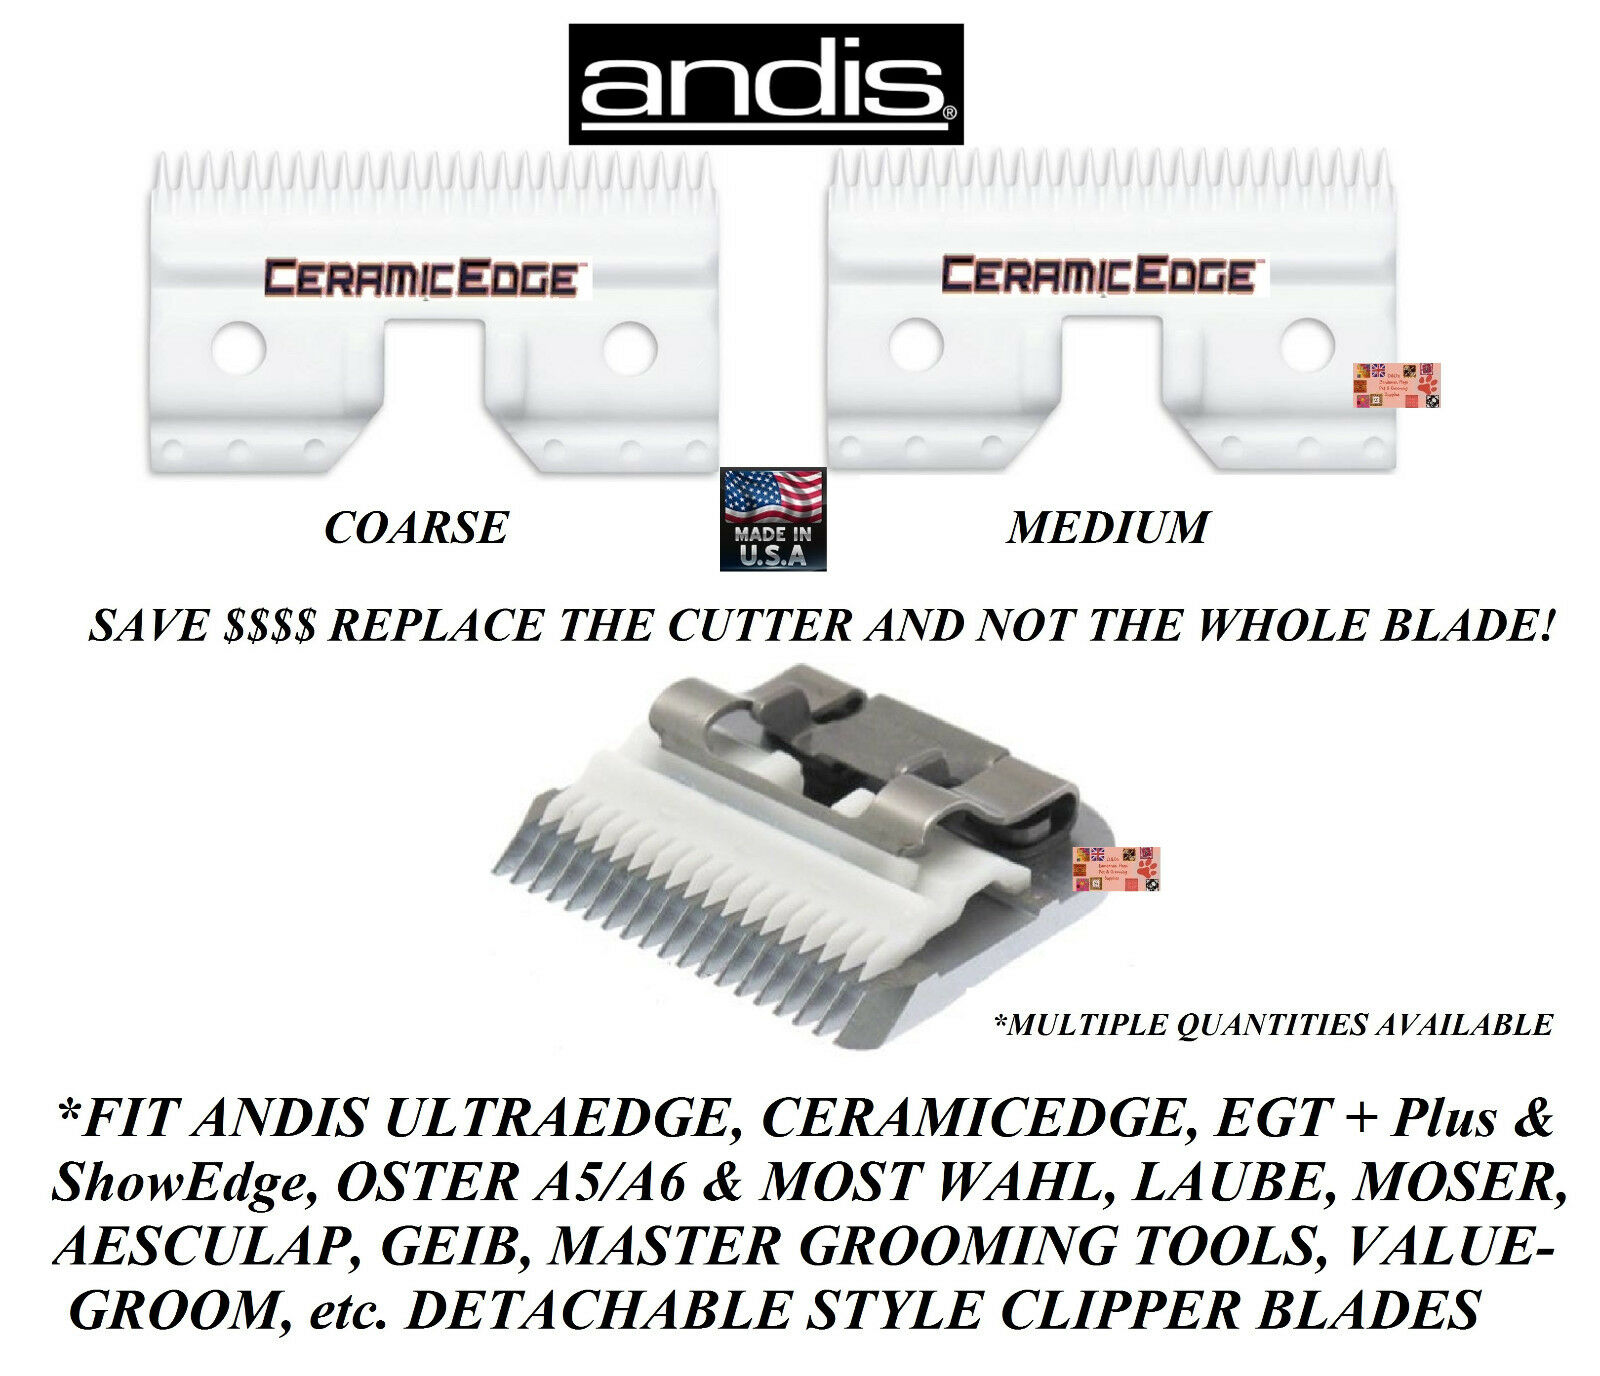 Andis Ceramic Edge Detachable Clipper Blade CUTTERFit Oster A5,Many Wahl,Geib